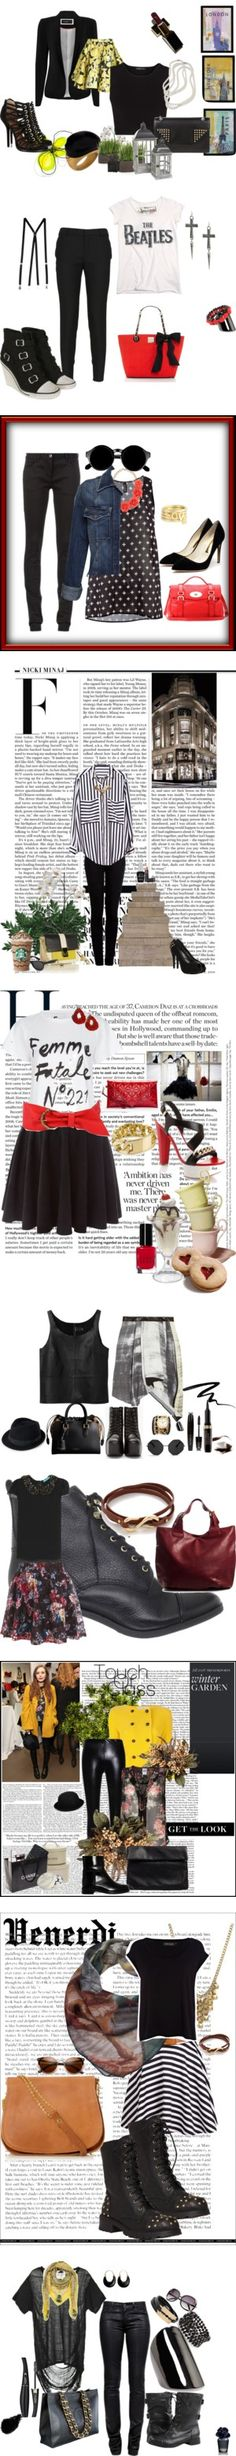 """nero 2013"" by sara-giovannelli on Polyvore"